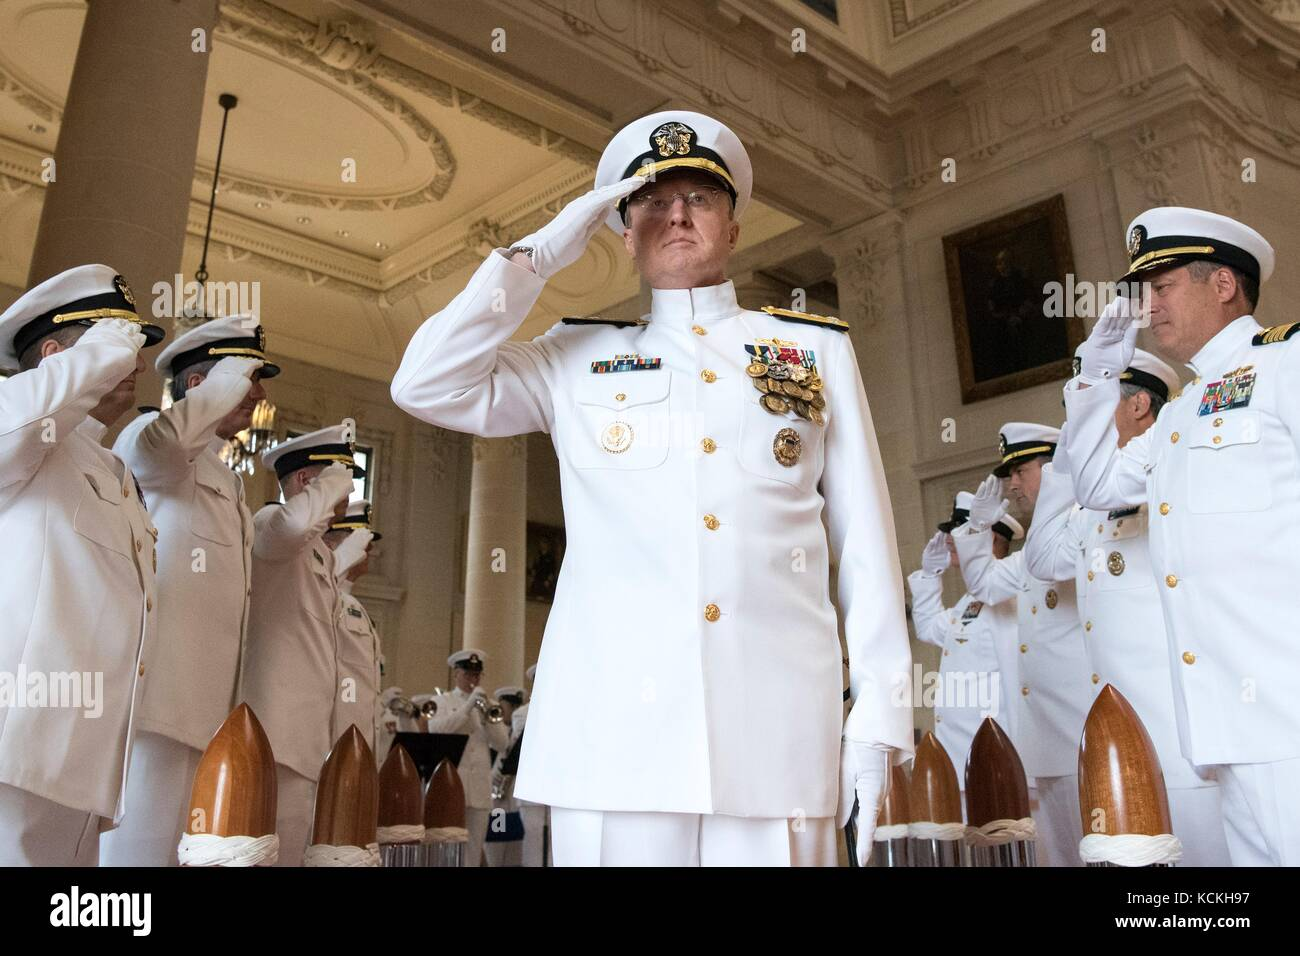 Military retirement ceremony stock photos military for Chair joint chiefs of staff